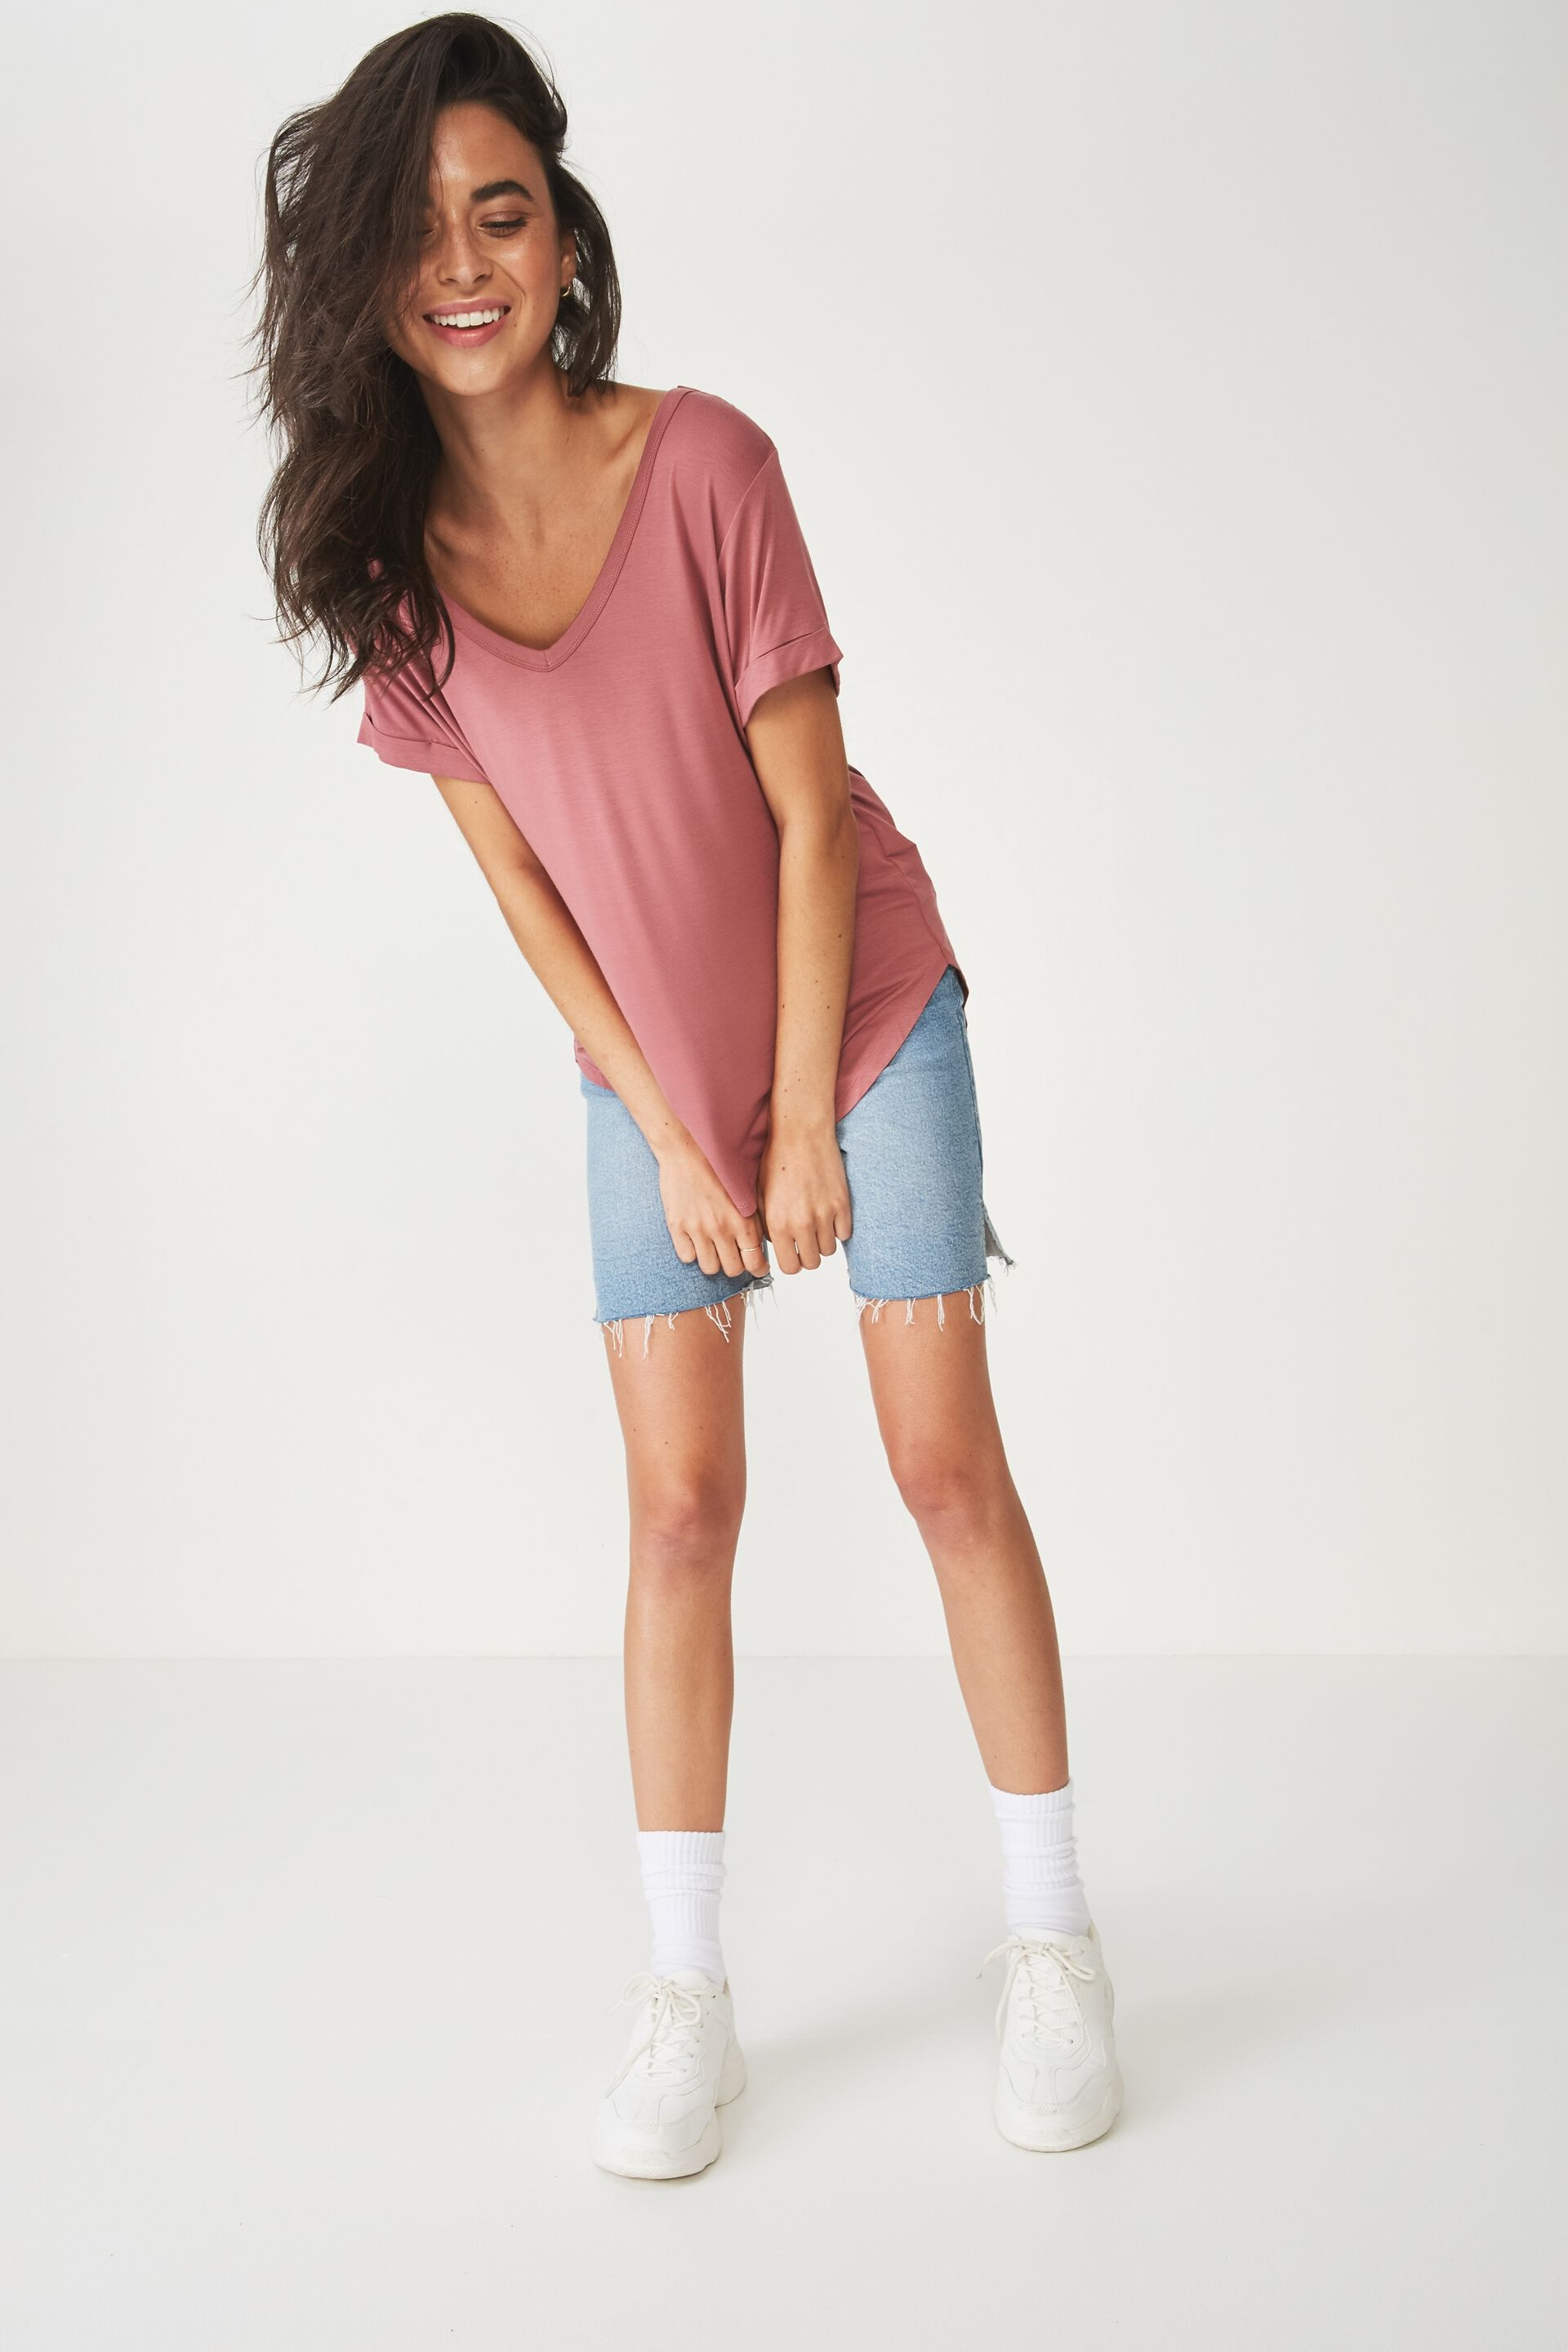 Cotton T amp; On Women's Shirts Tees xFaqwwSn